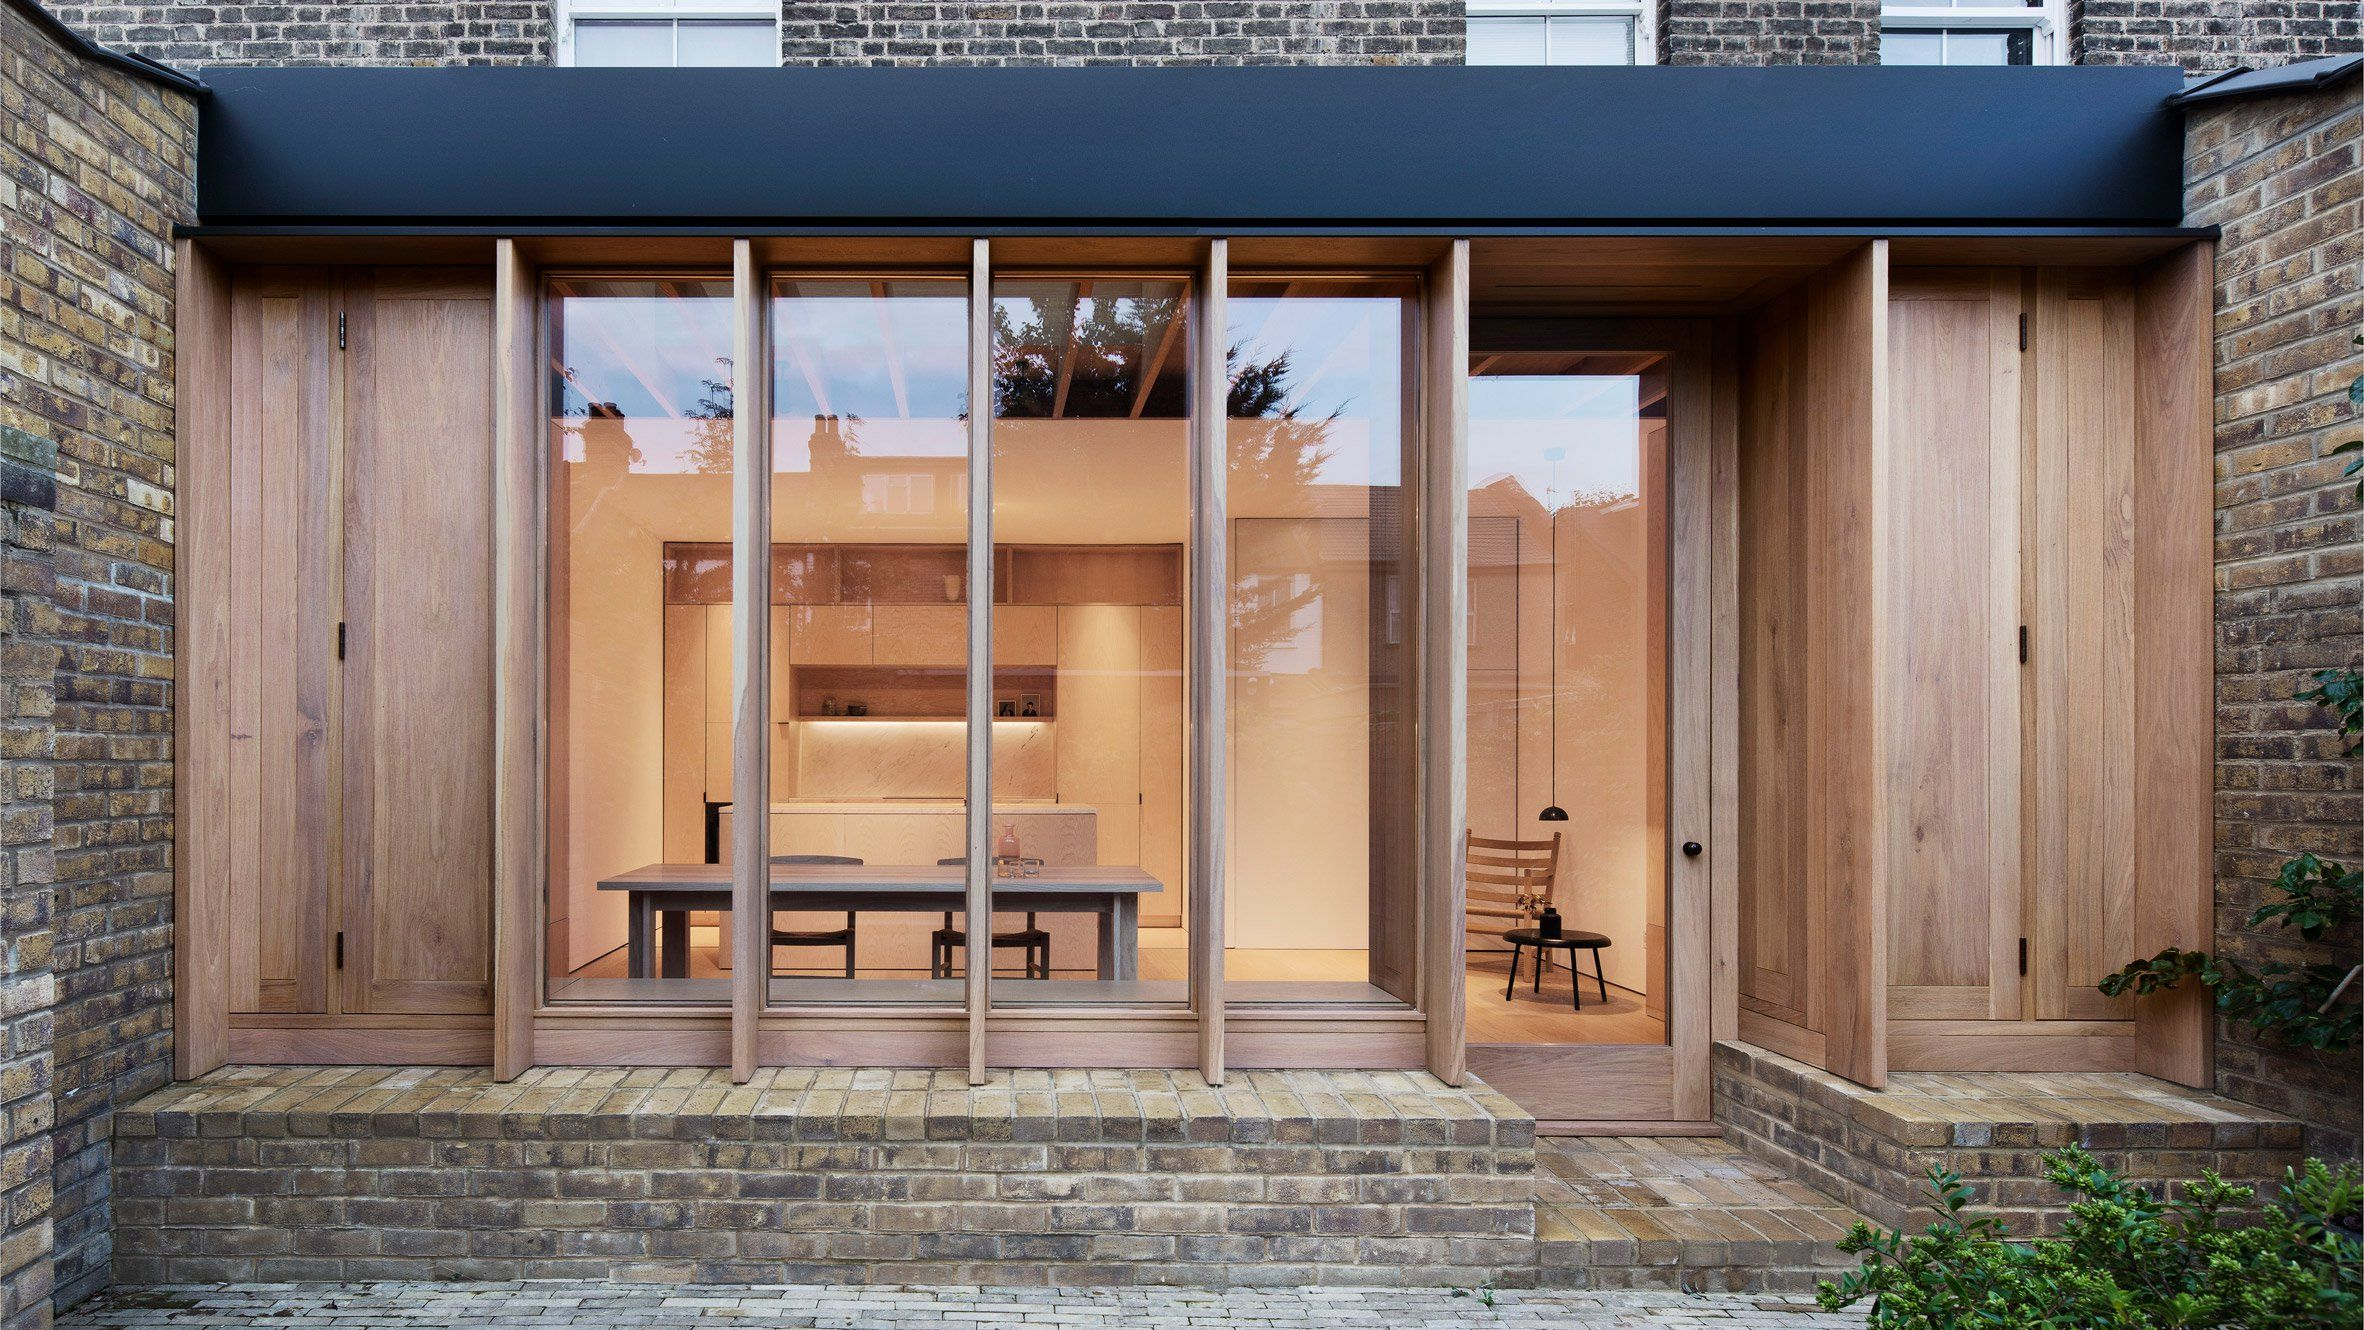 Designs modern home osullivan skoufoglou architects builds wood lined extension in london